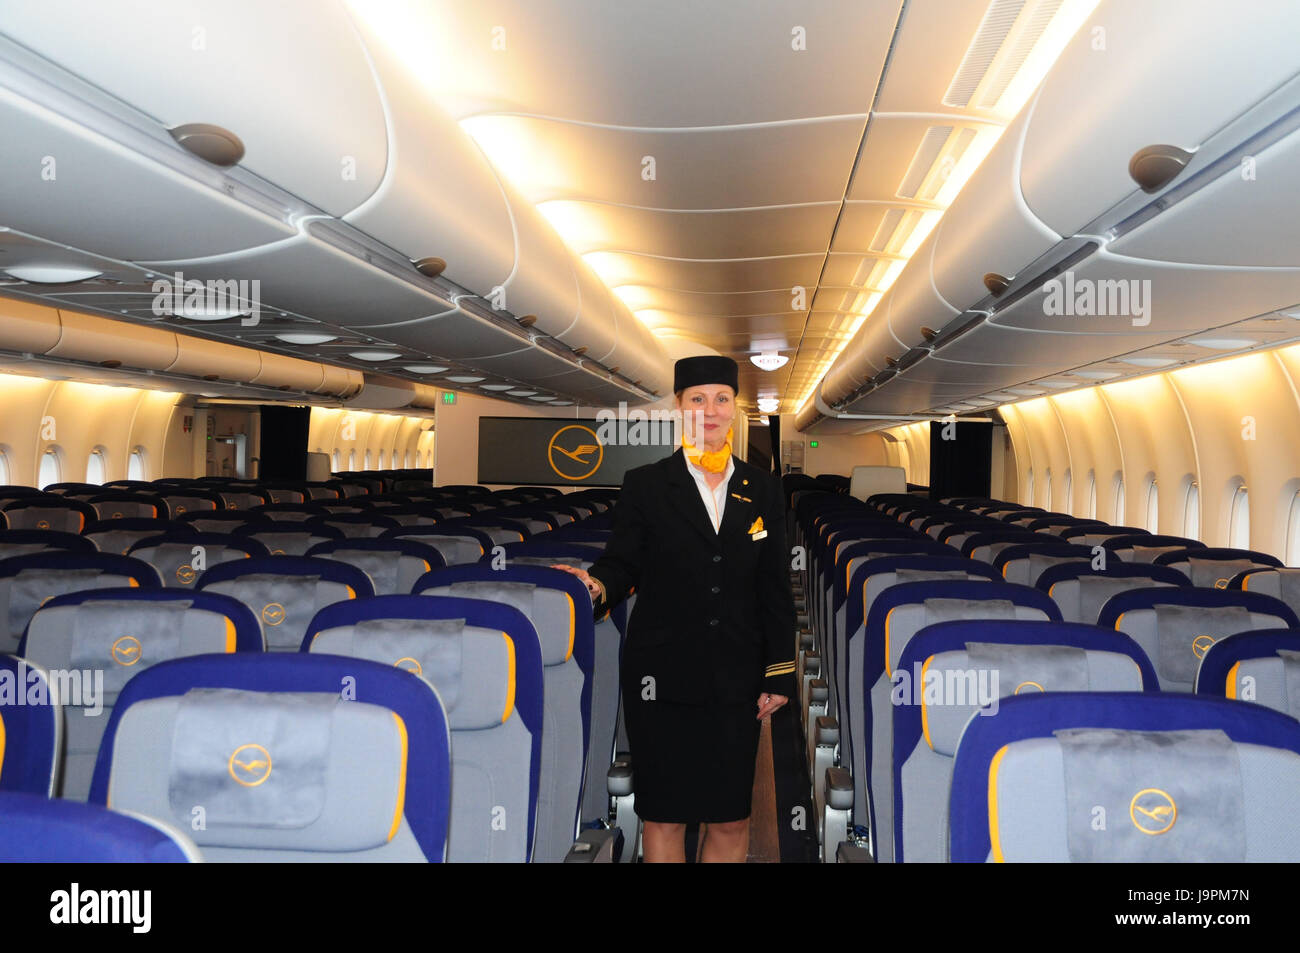 Airplane,inside,seats,flight attendant,air liner,seats,places,lighting,travel,vacation,people,stewardess,stand,smile,uniform,headgear,occupation,Lufthansa, - Stock Image